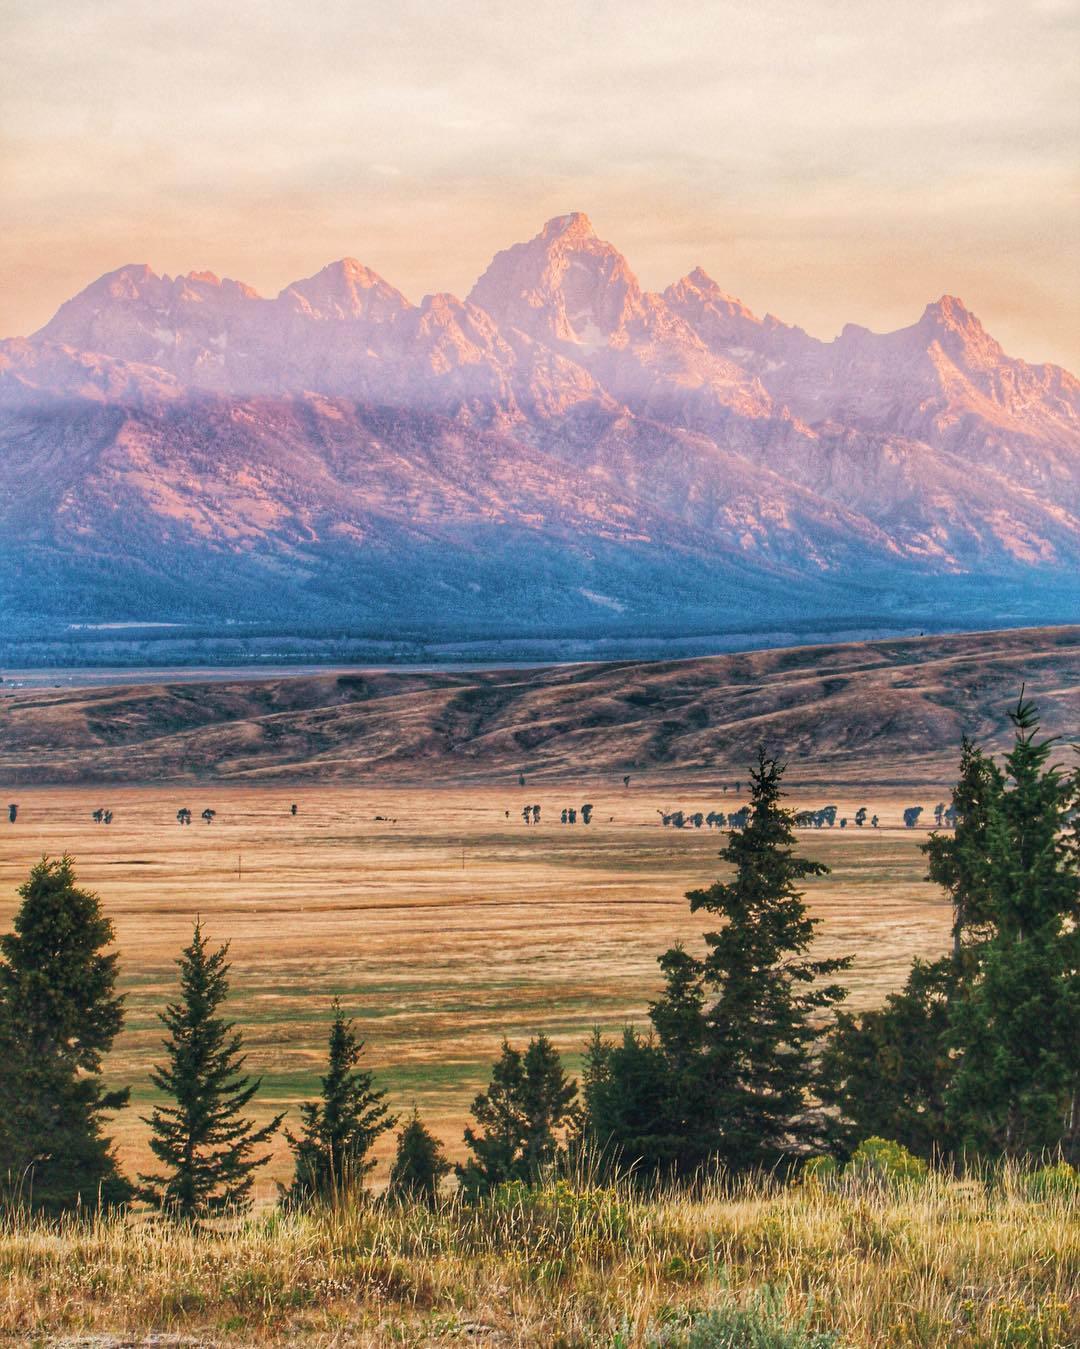 Grand Teton National Park is one of the most scenic places I have had the pleasure of visiting. I took this sunrise photo from across the way at Curtis Canyon, I couldn't feel my fingers but I will never forget that beautiful morning, or that mountain...